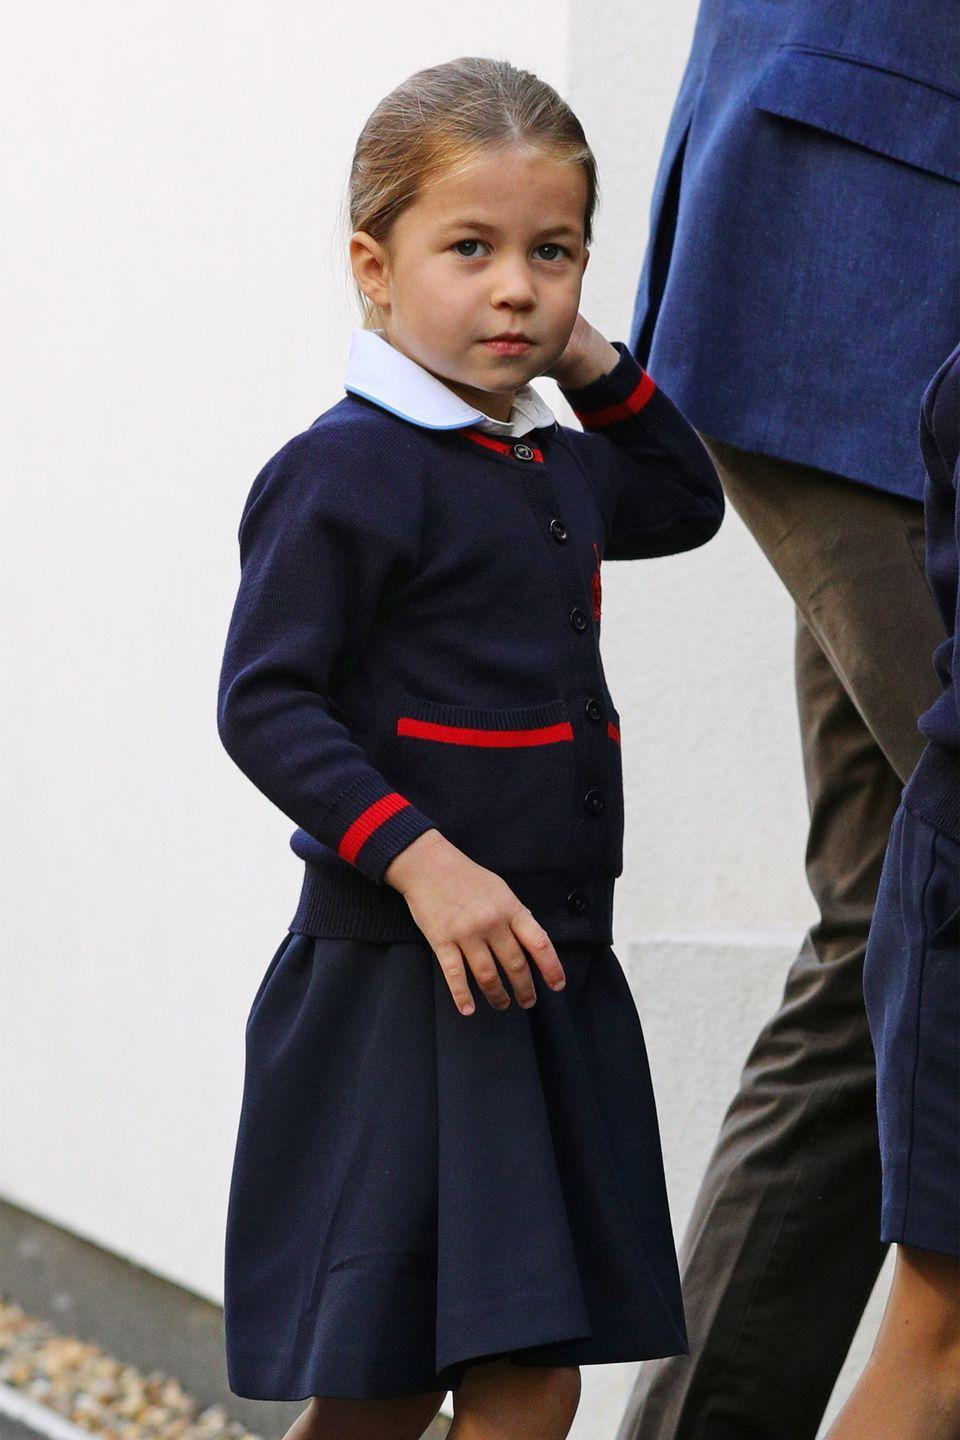 <p>Princess Charlotte looks so adorable in her uniform!</p>